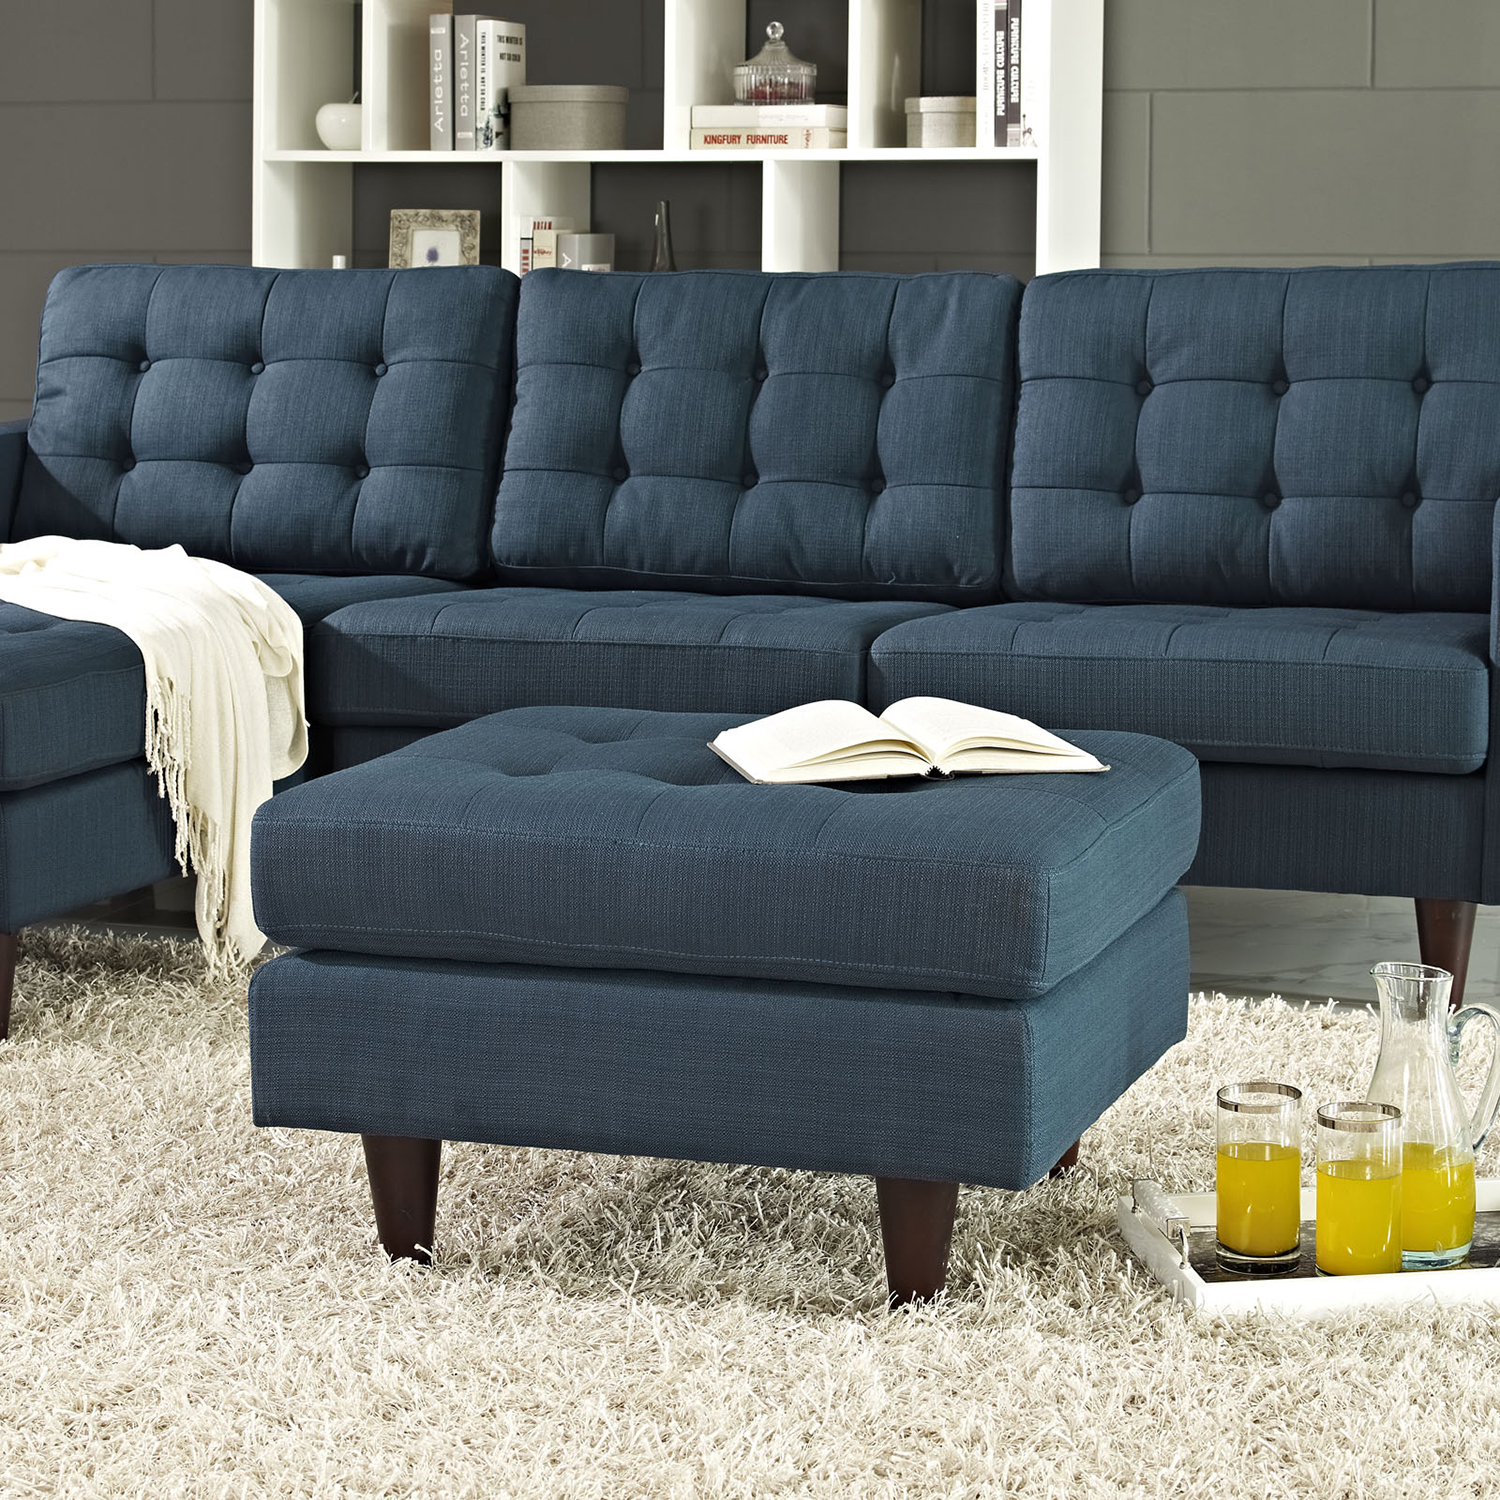 Empress Upholstered Ottoman - Tufted - EEI-1667